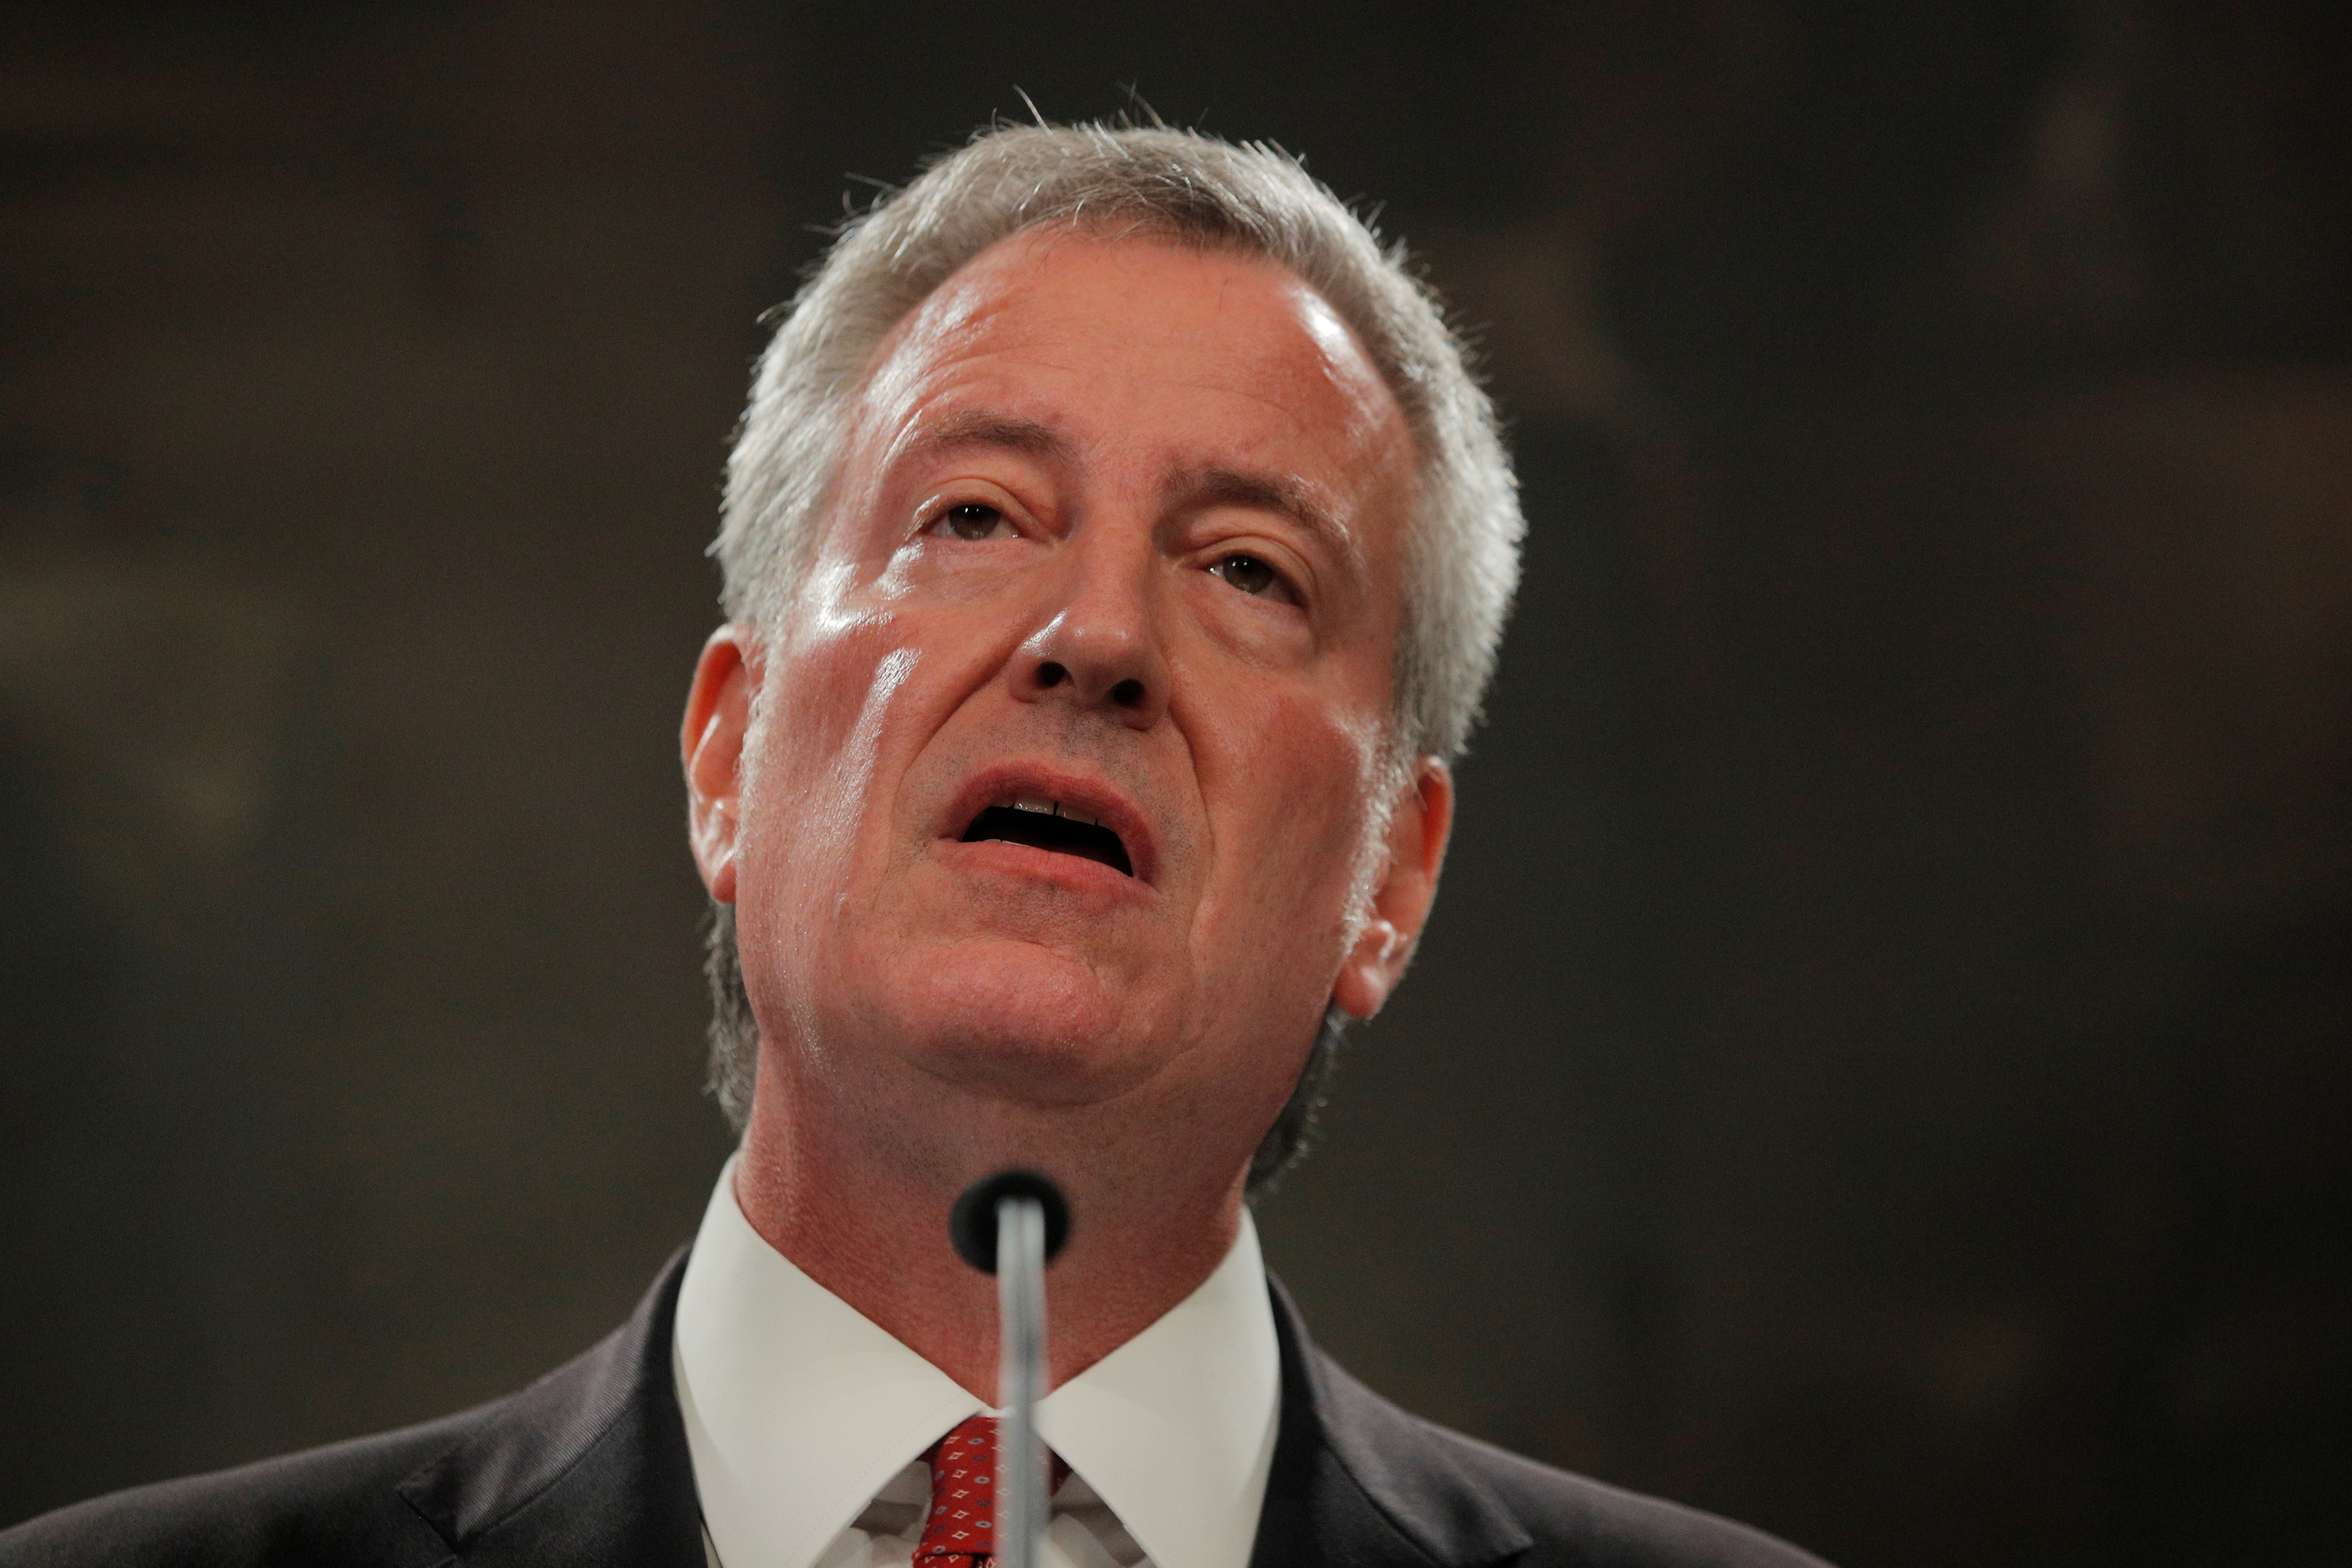 New York City Mayor Bill de Blasio speaks to the news media after a New York Police Department (NYPD) disciplinary judge recommended the firing of officer Daniel Pantaleo, who used a fatal chokehold on unarmed black man Eric Garner during an arrest in 2014, at city hall in New York, U.S. August 2, 2019. REUTERS/Brendan McDermid